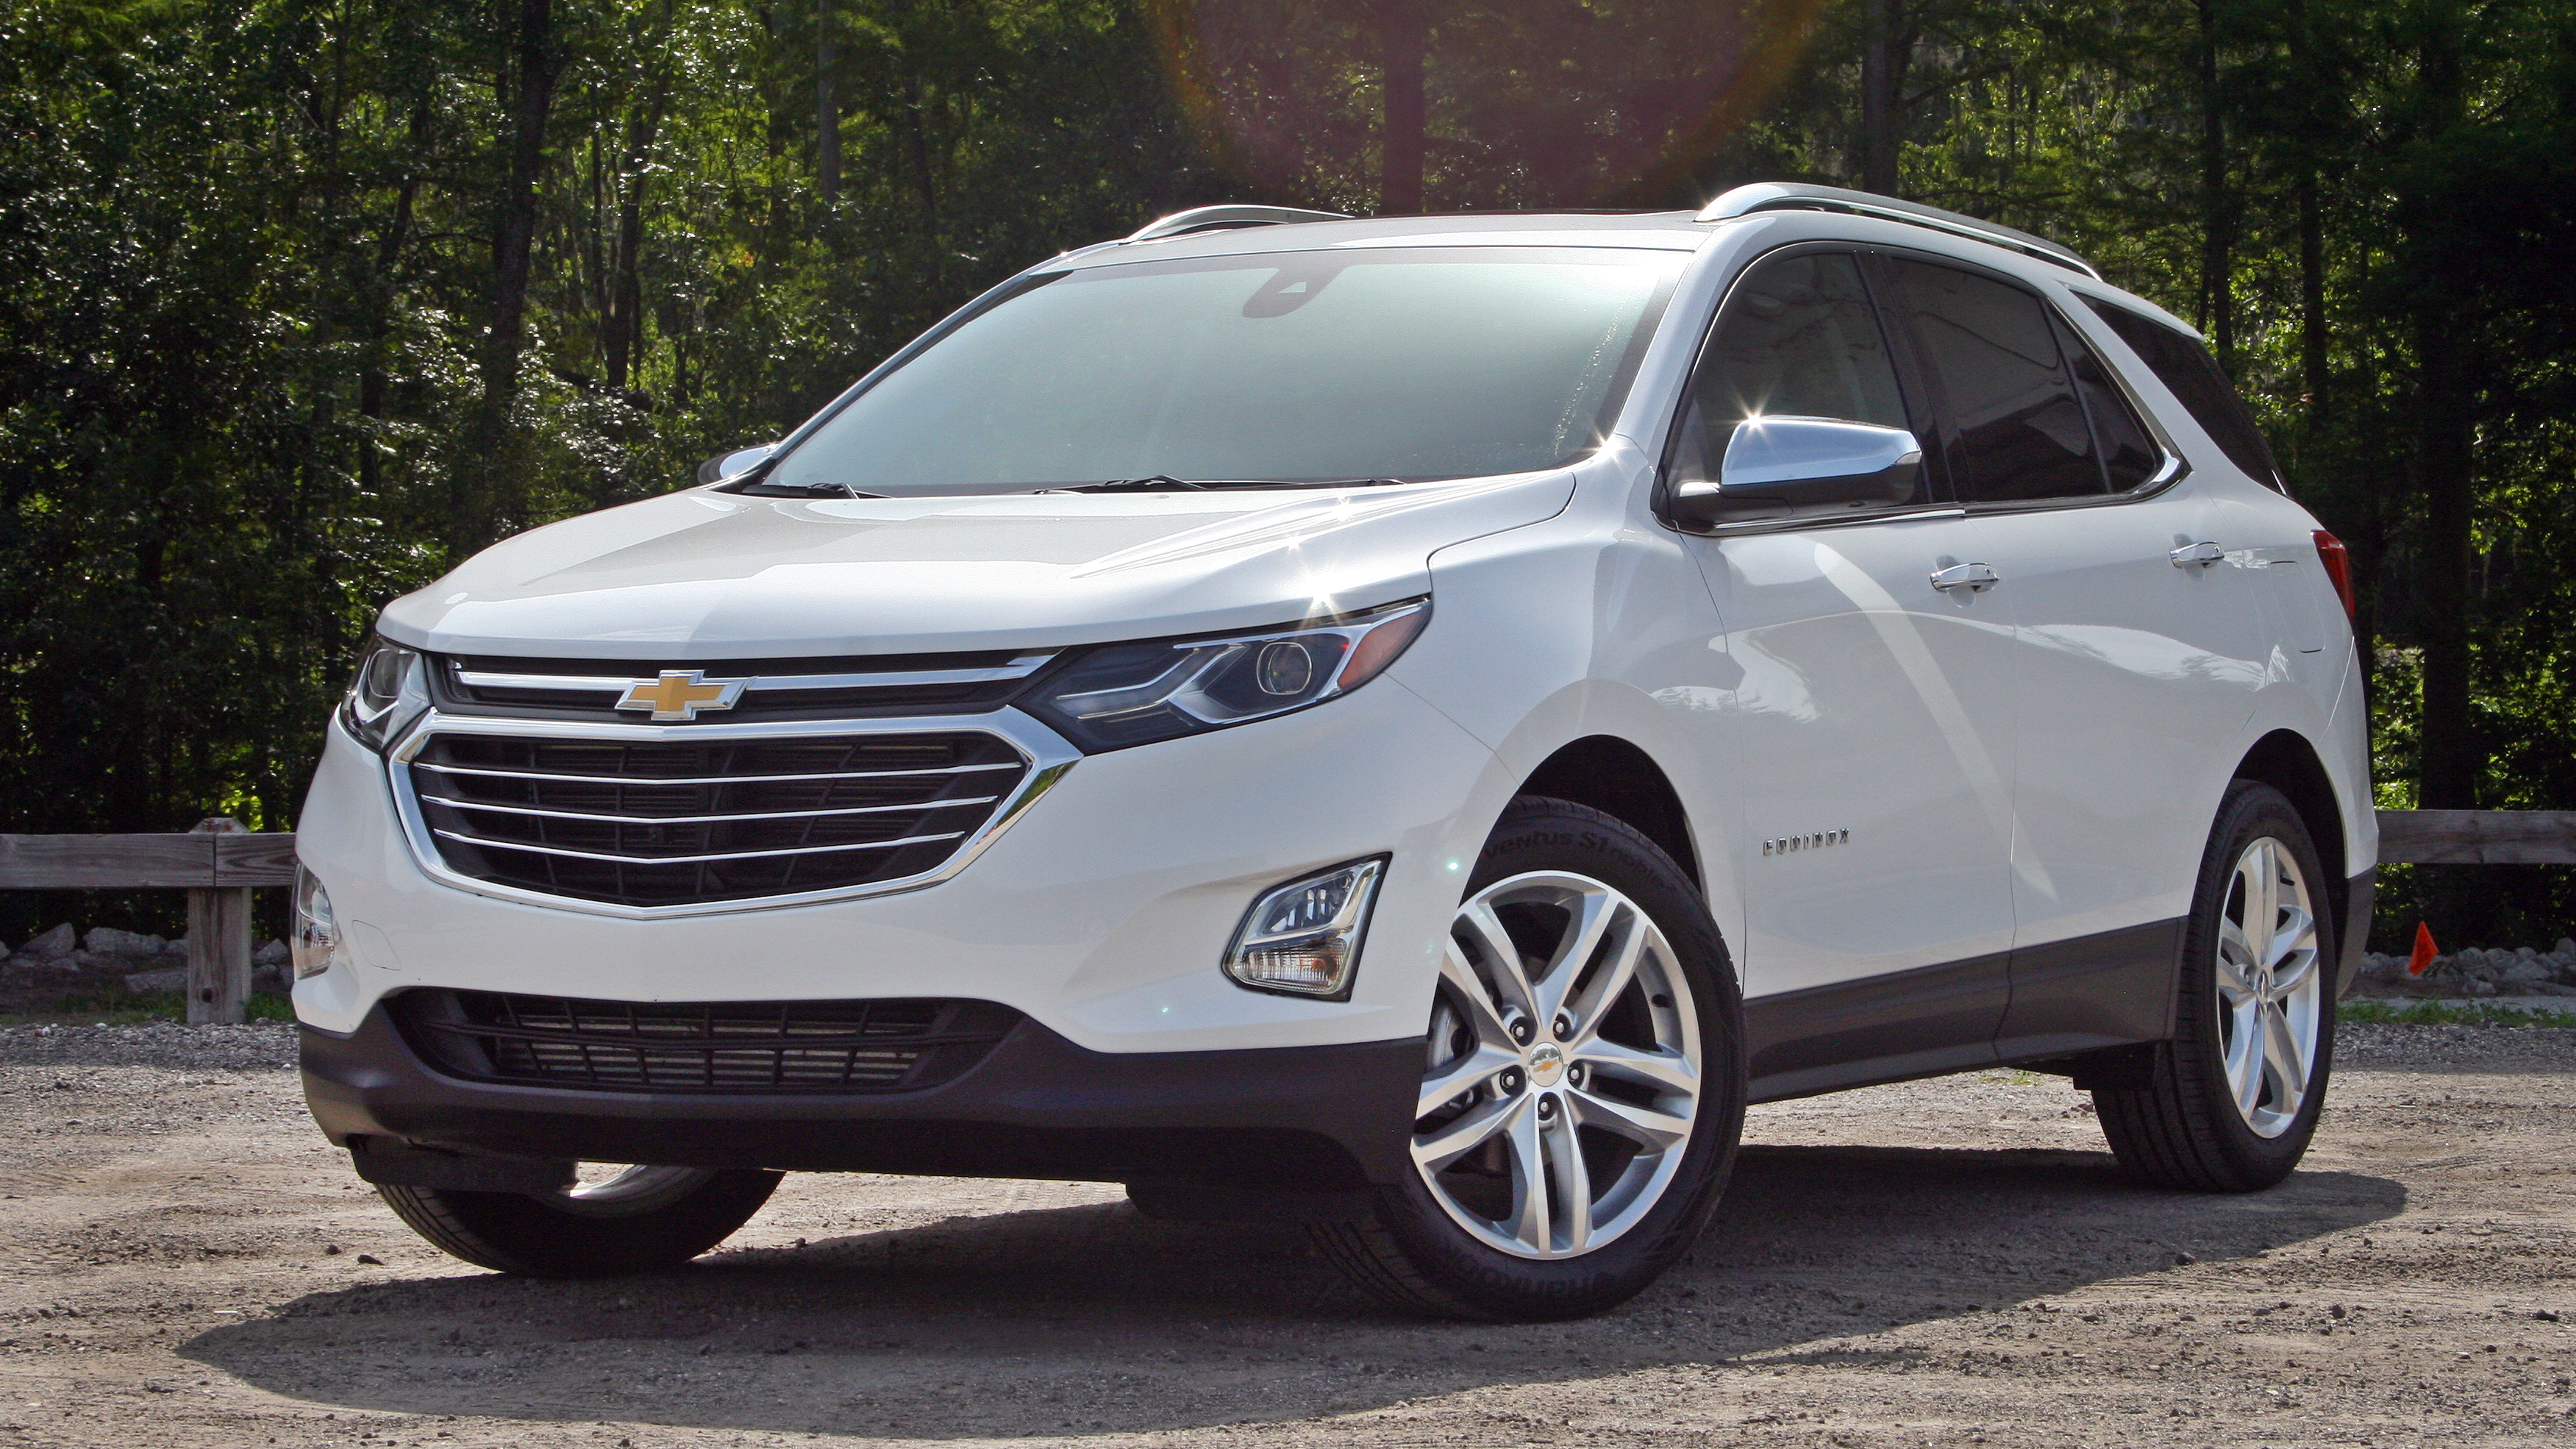 2018 Chevrolet Equinox – Driven Review - Top Speed